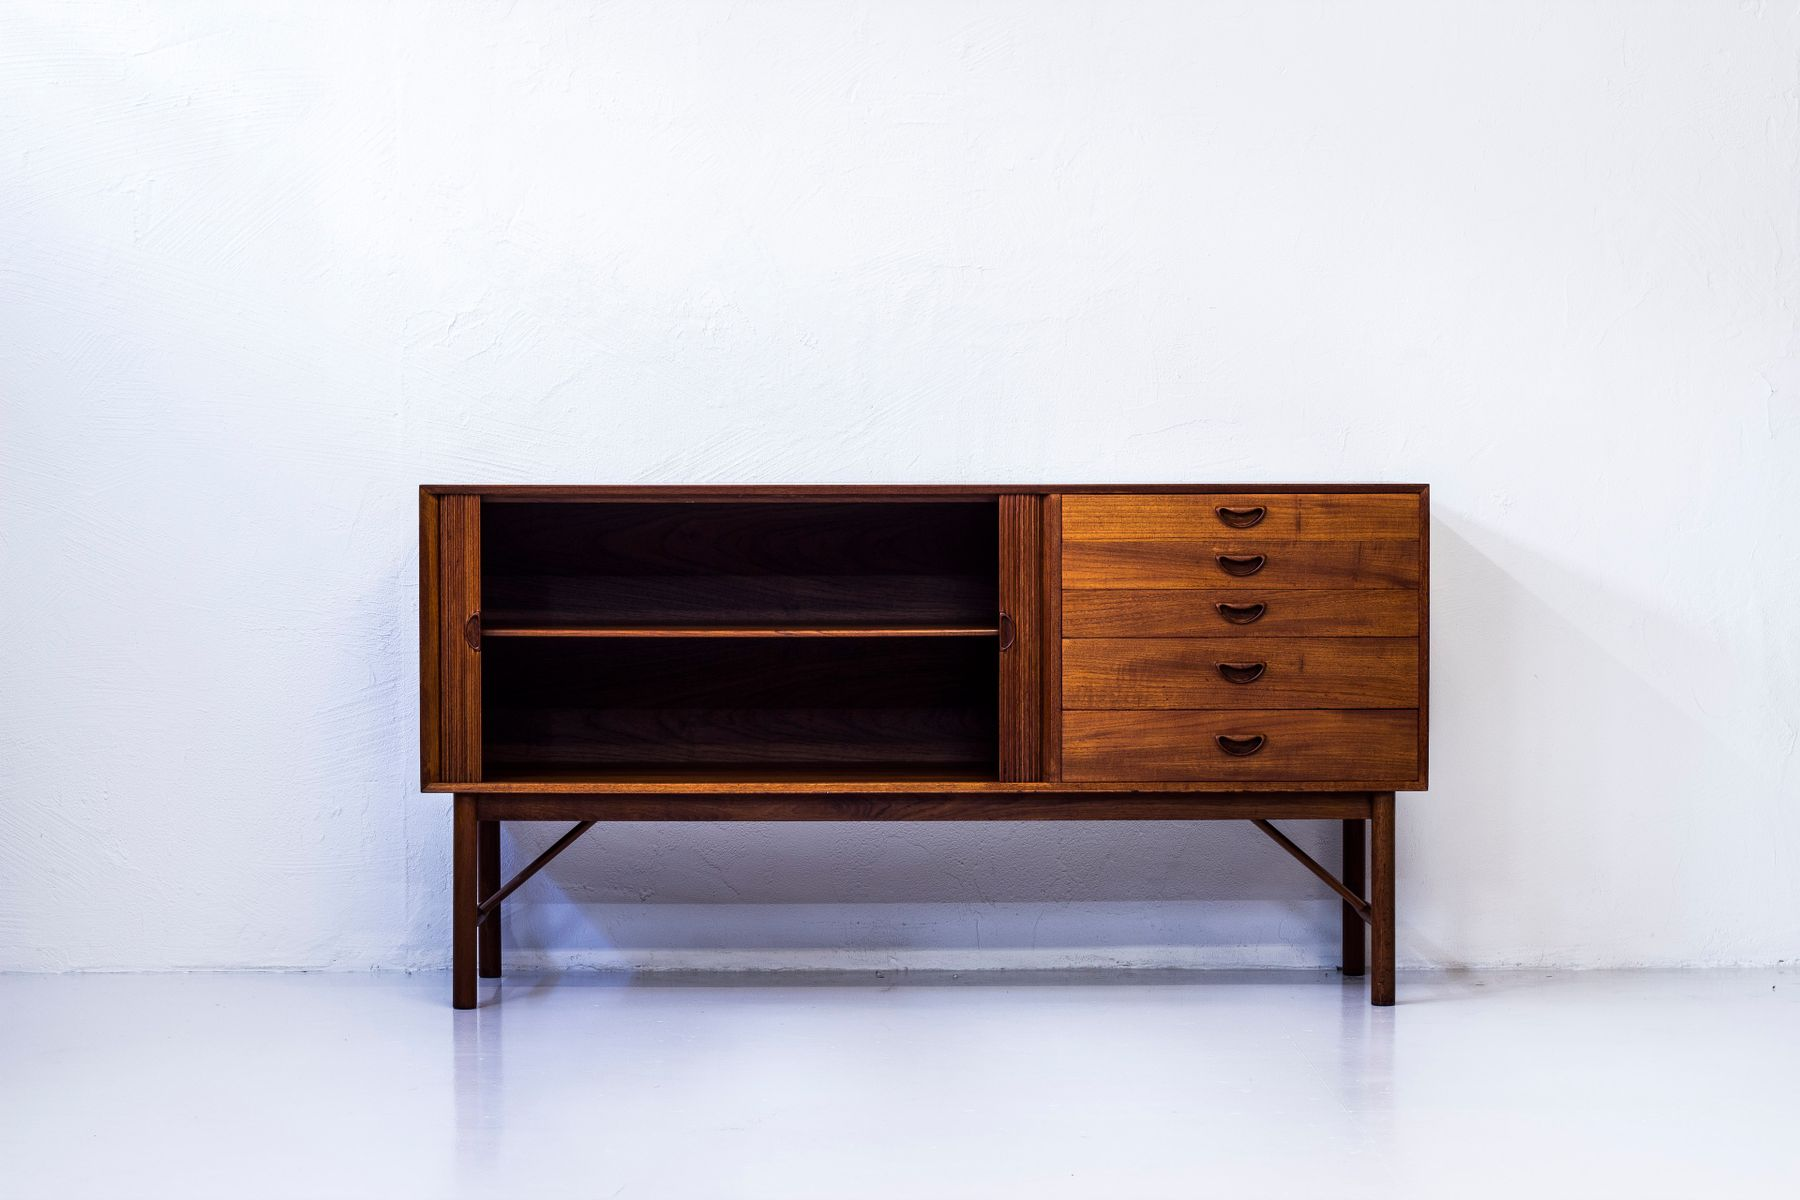 d nisches teak sideboard von hvidt m lgaard f r s borg. Black Bedroom Furniture Sets. Home Design Ideas